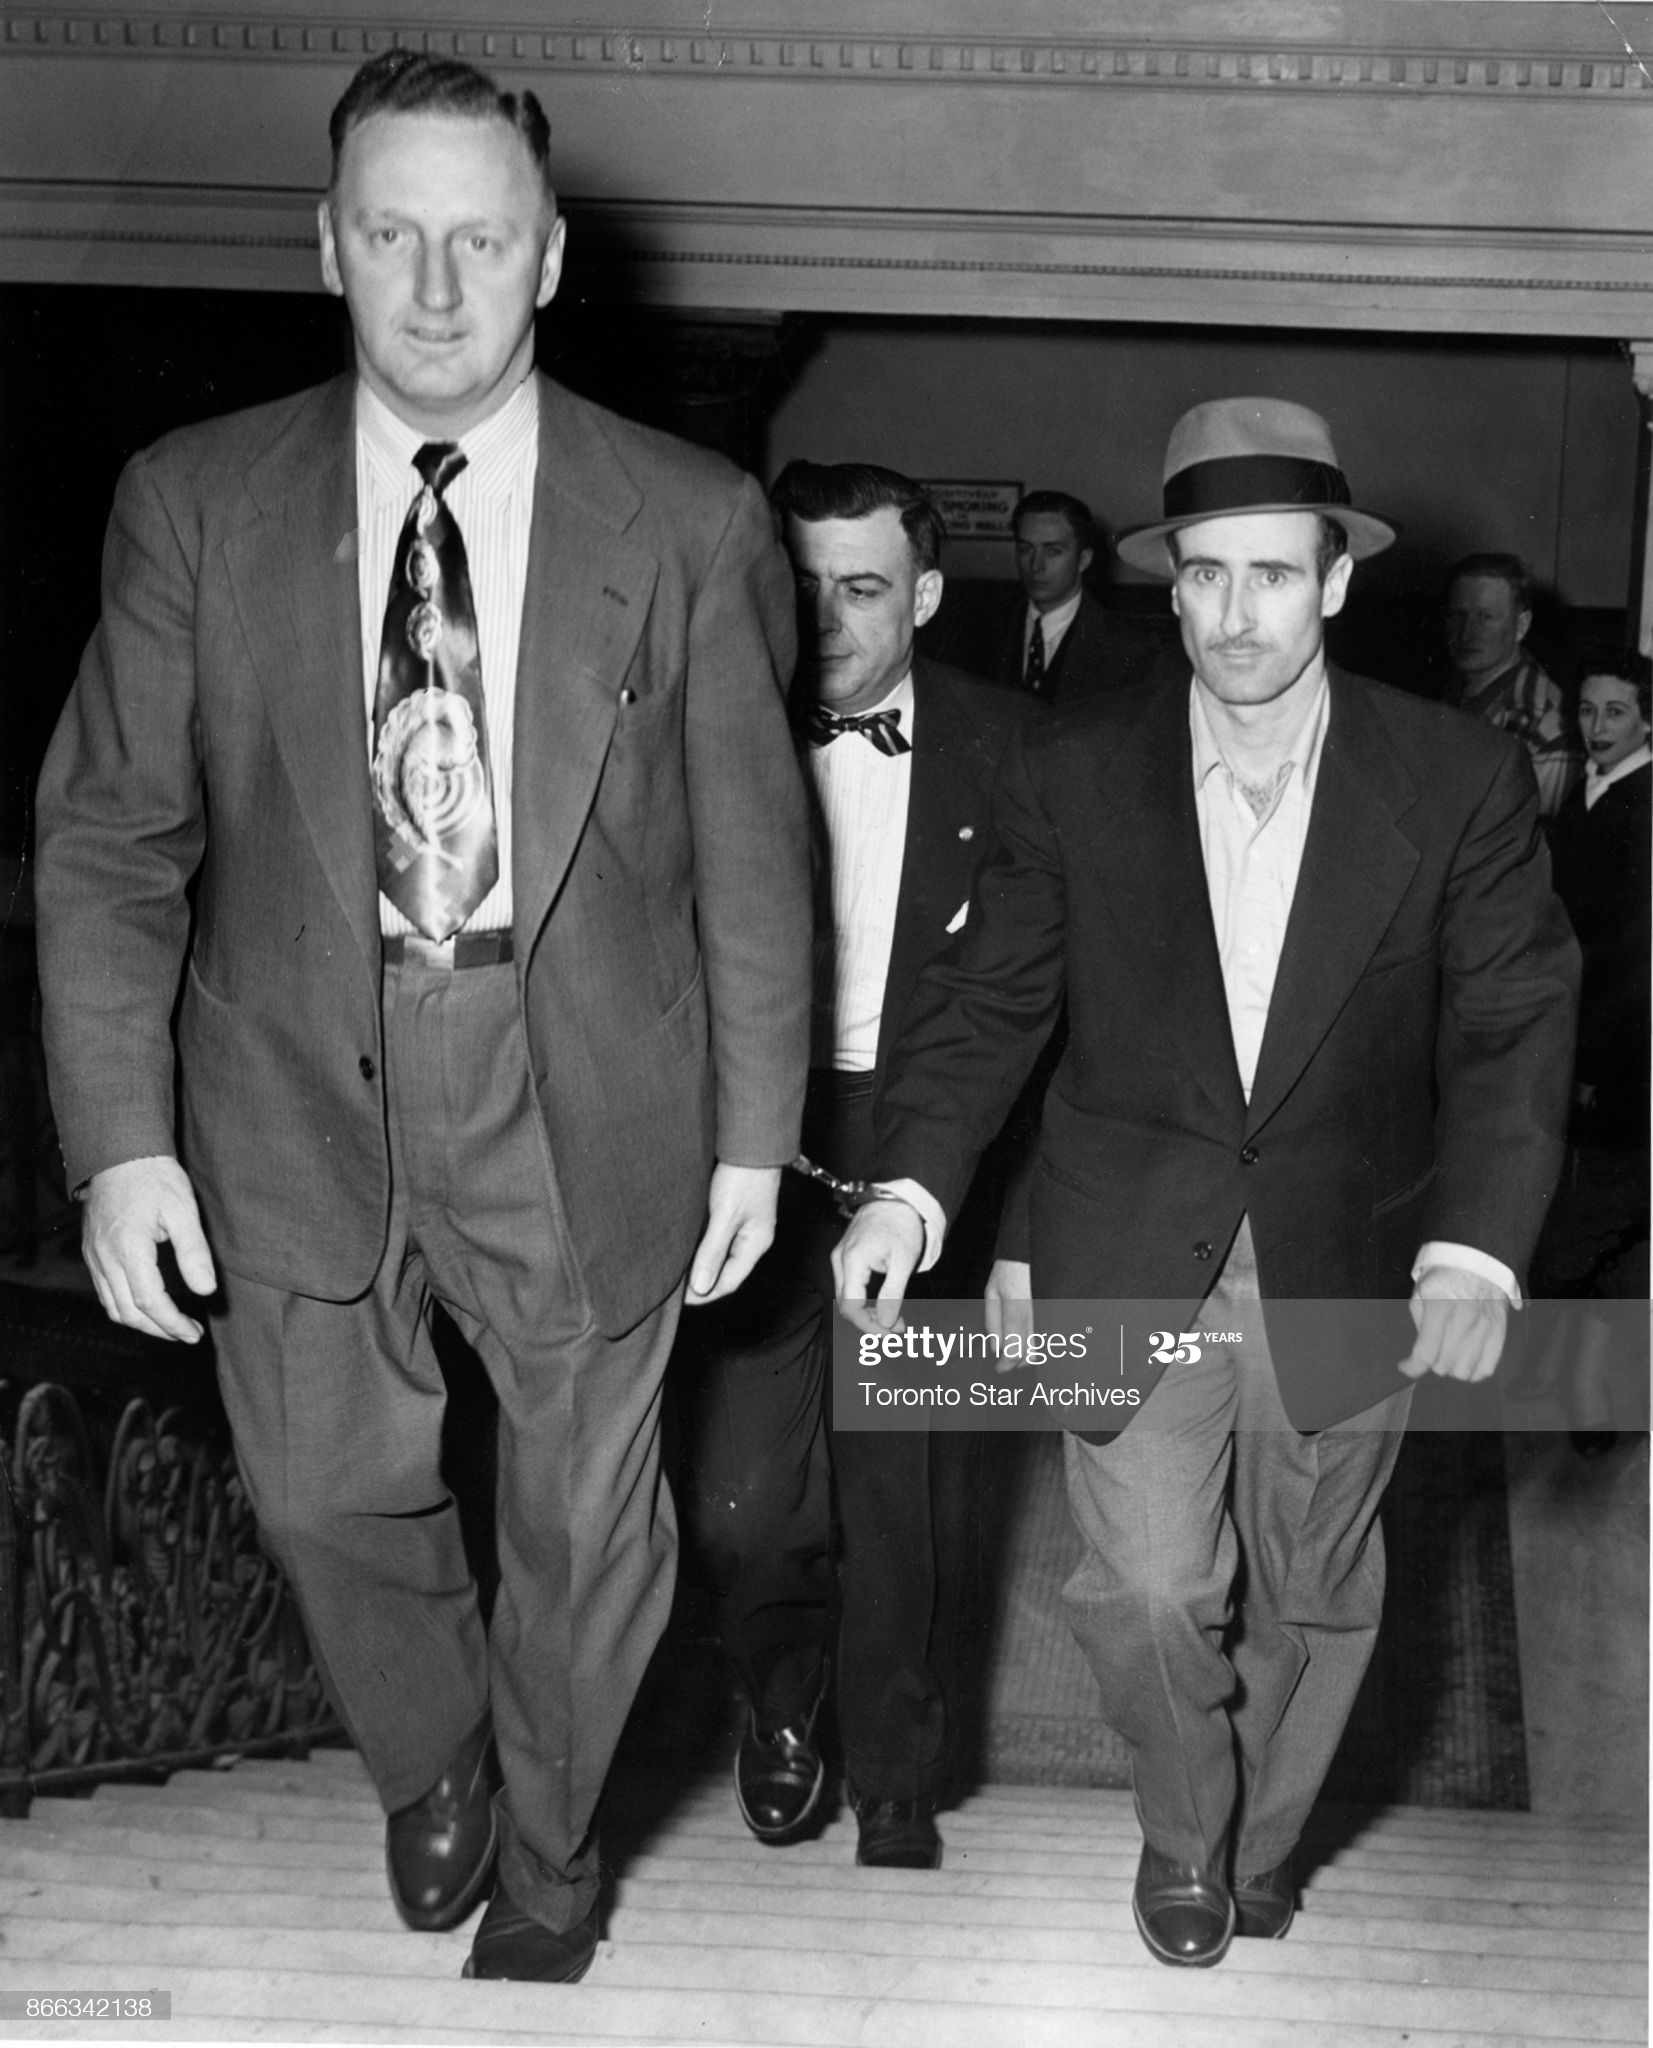 Notorious bank robber Edwin Alonzo Boyd is led into court in 1952 by Det.-Sgt. Adolphus Payne.